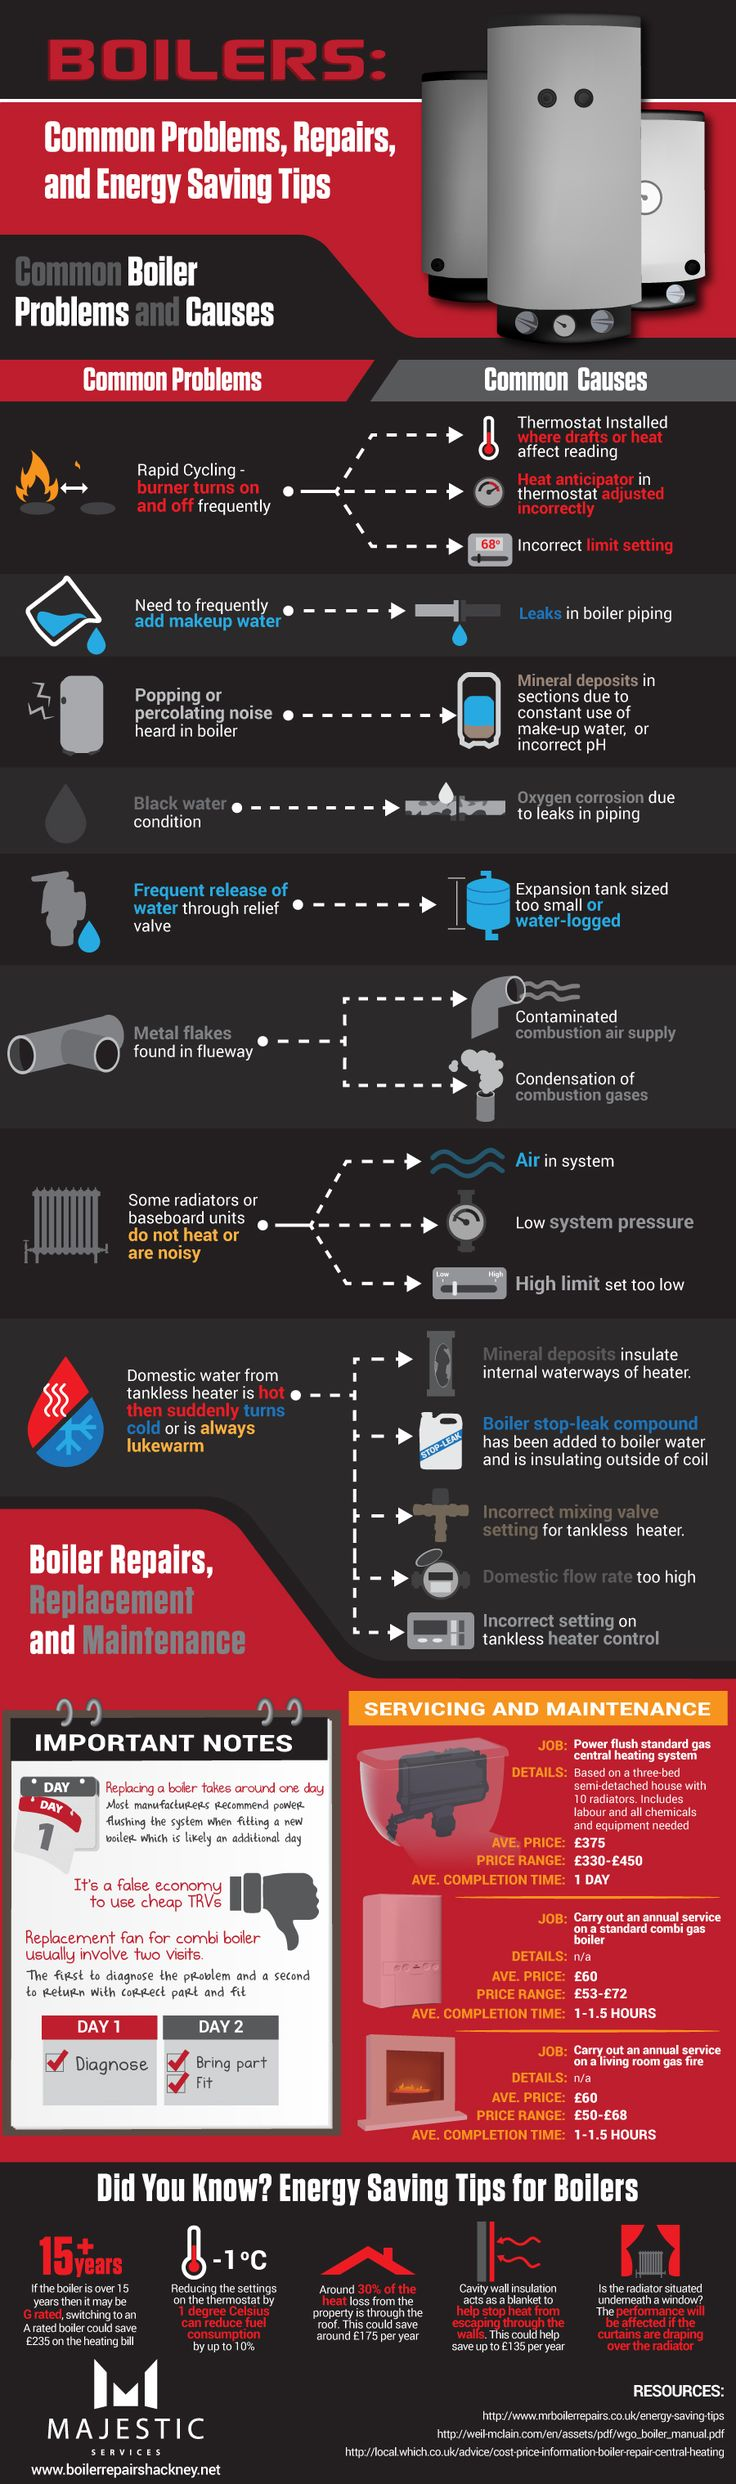 27 best heating images on pinterest infographic infographics and boilers common problems repairs and energy saving tips fandeluxe Images